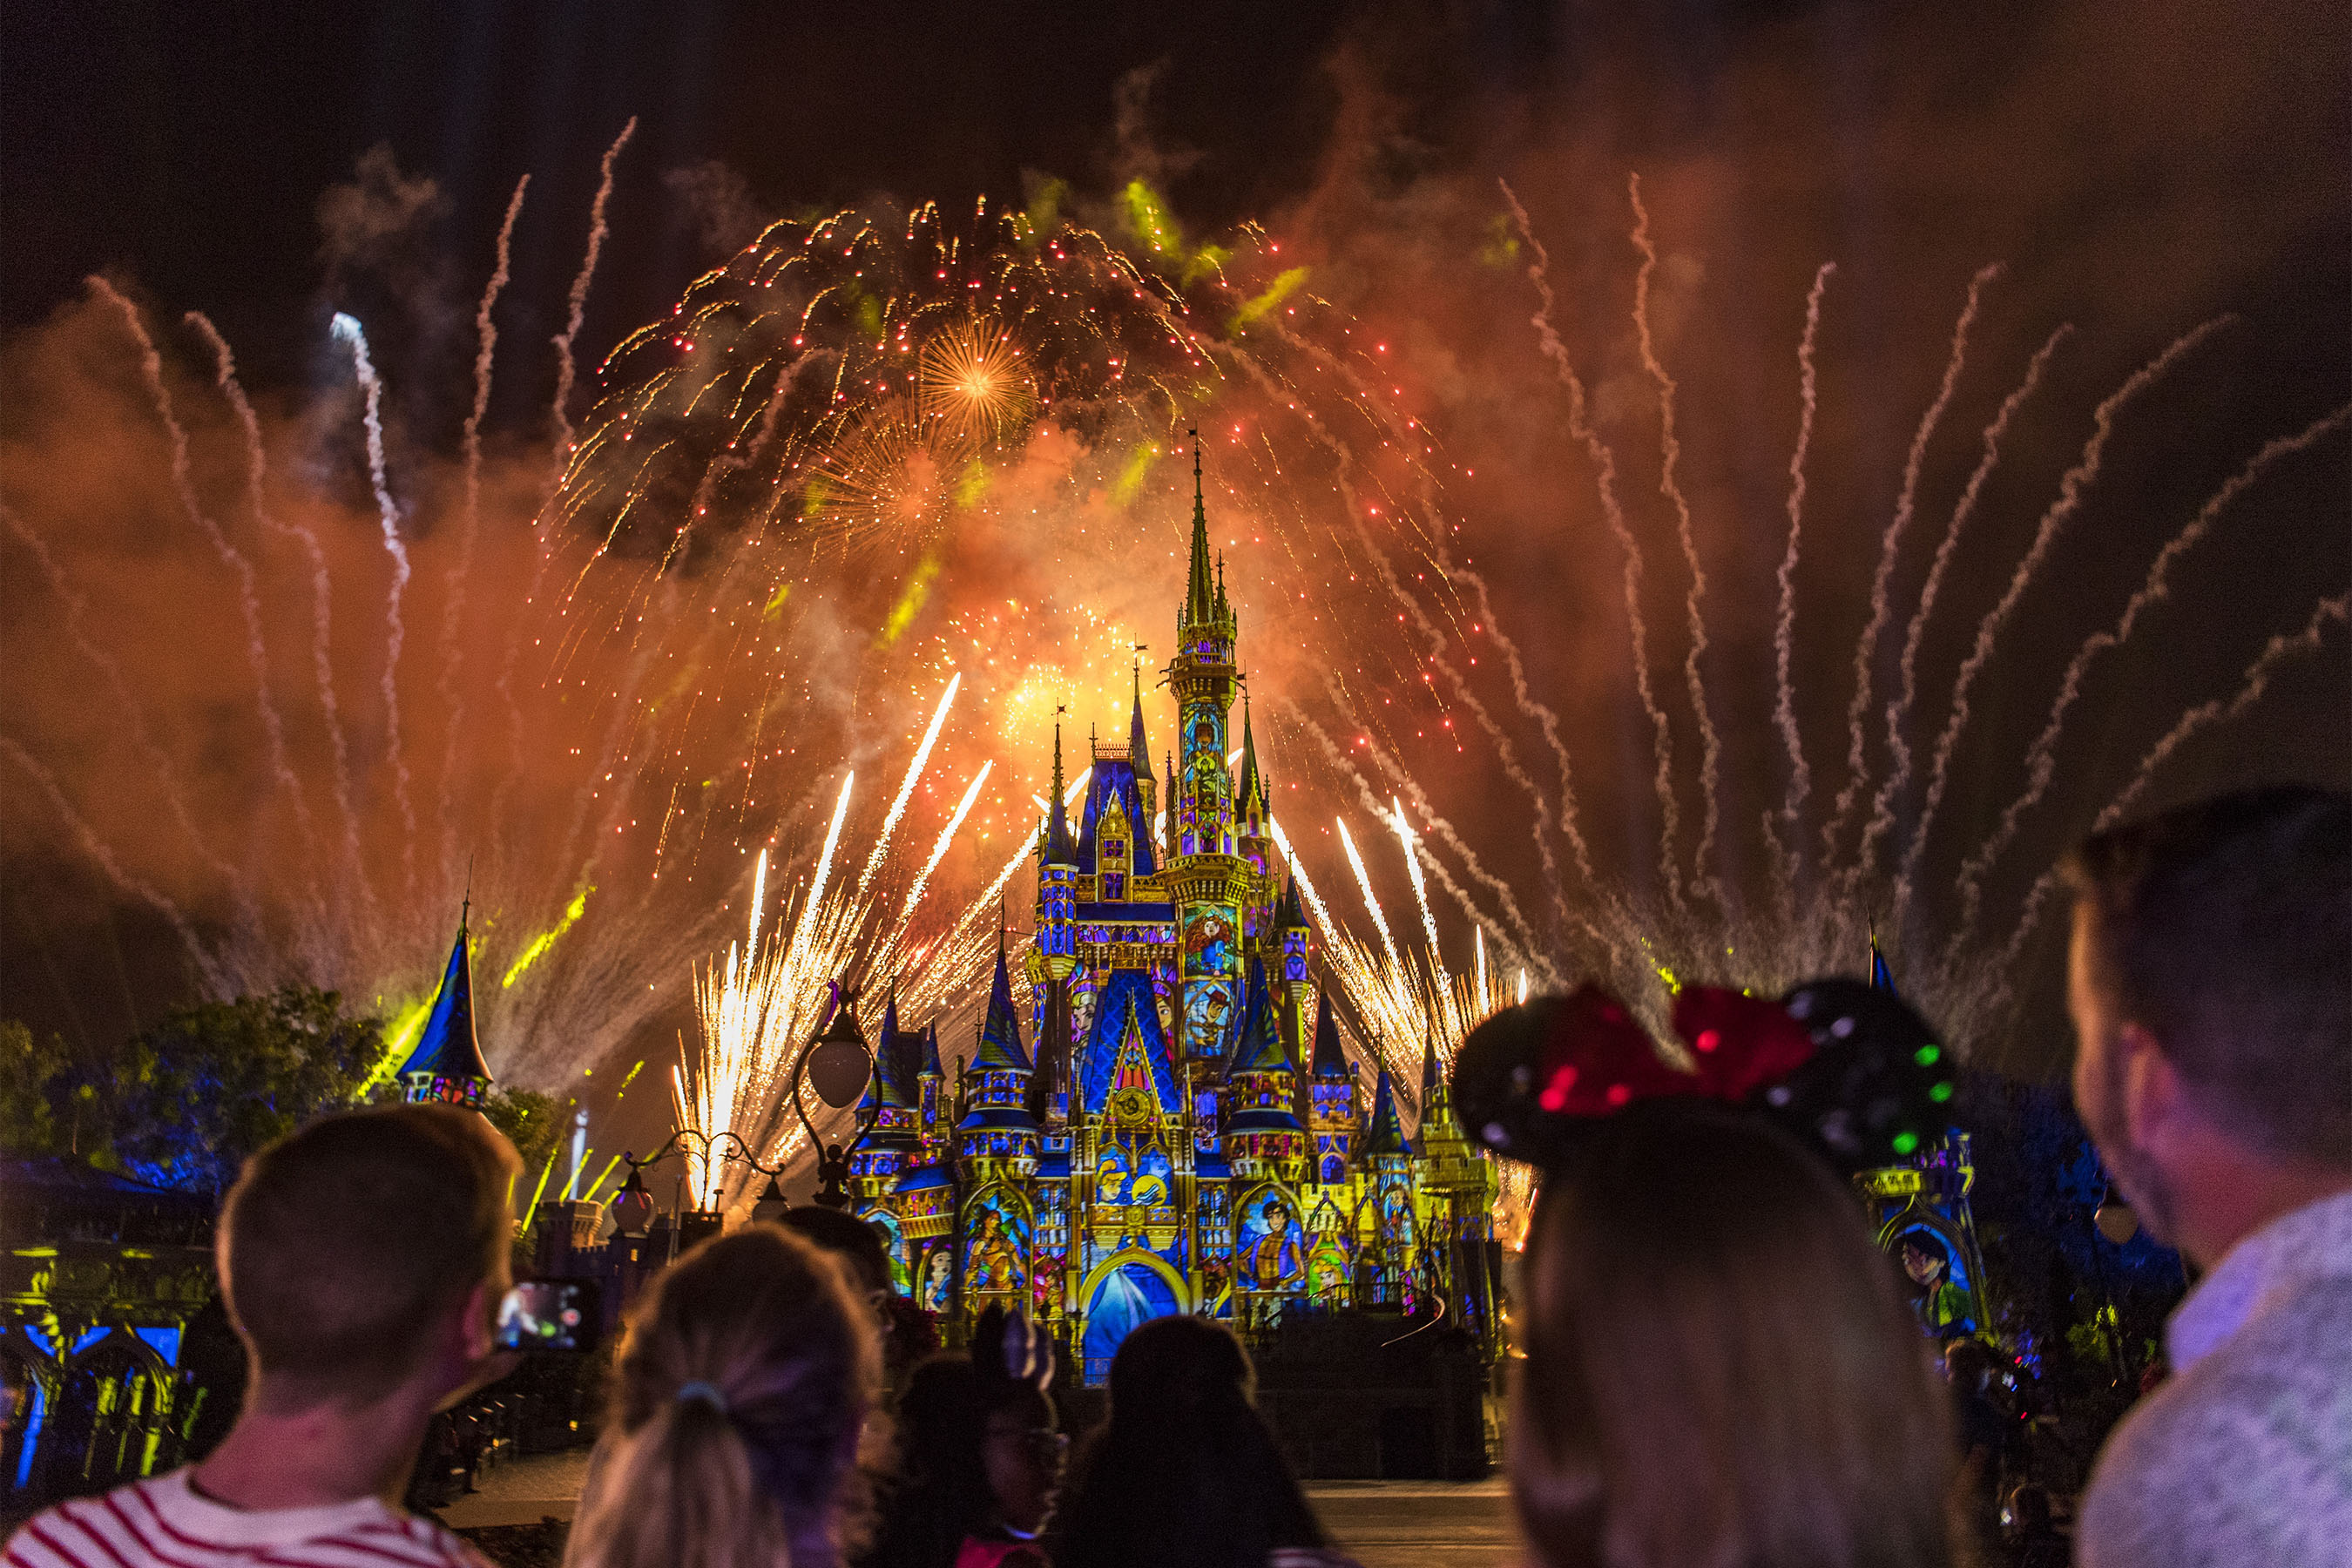 Happily Ever After at Disney World's Magic Kingdom #disneyworld #happilyeverafter #magickingdom #disneyshows #disneyfireworks #disneytrip #disneyvacation #disneyentertainment